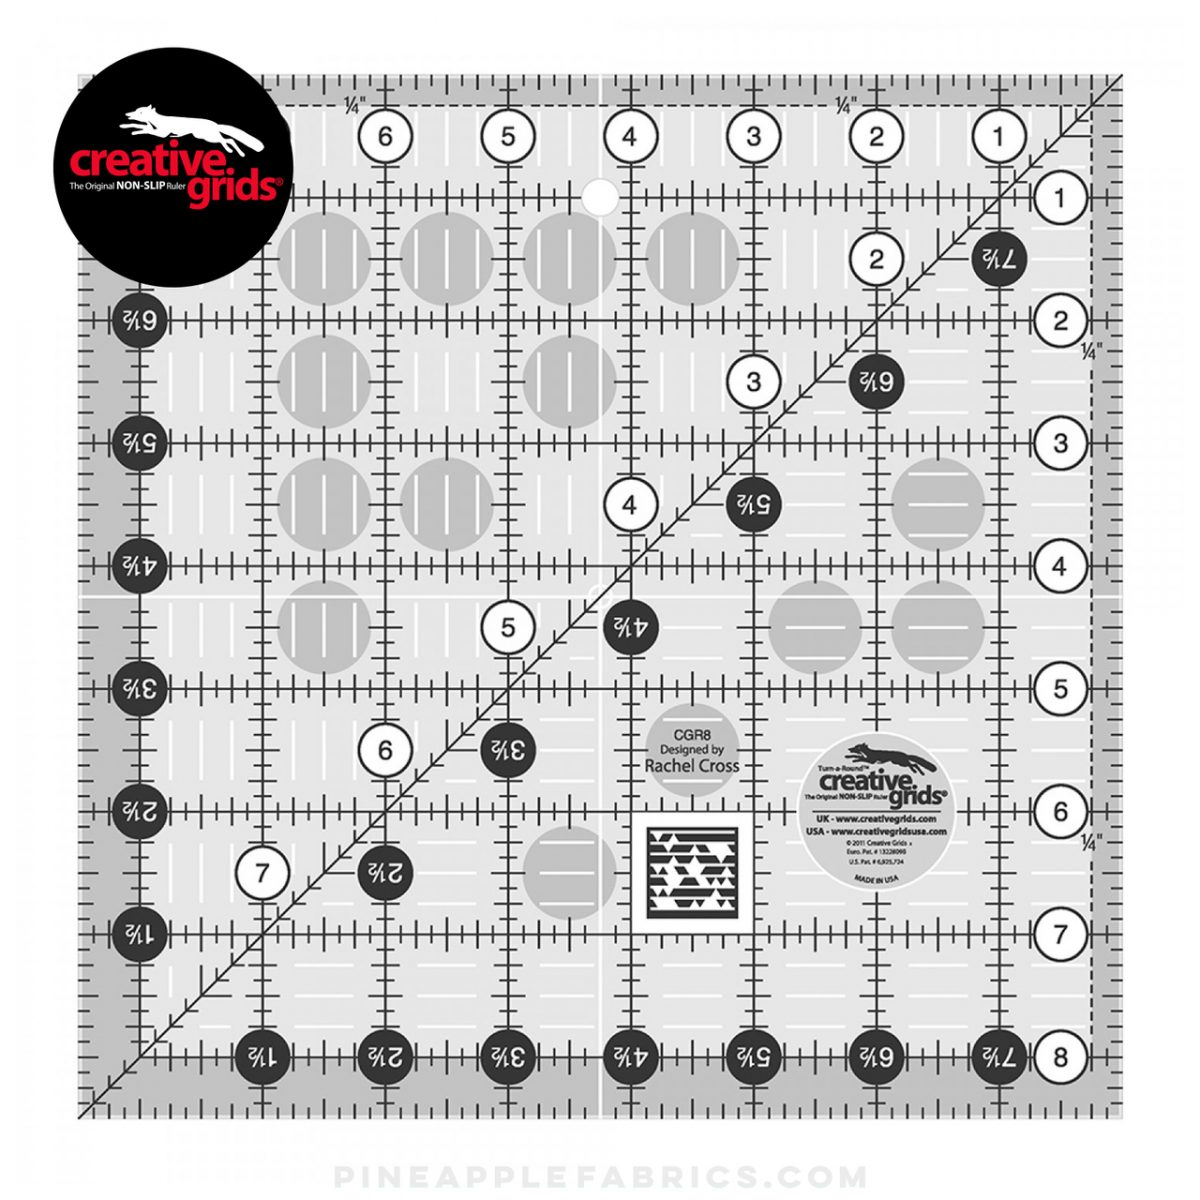 CGR8 - Creative Grids Quilt Ruler 8-1/2in Square